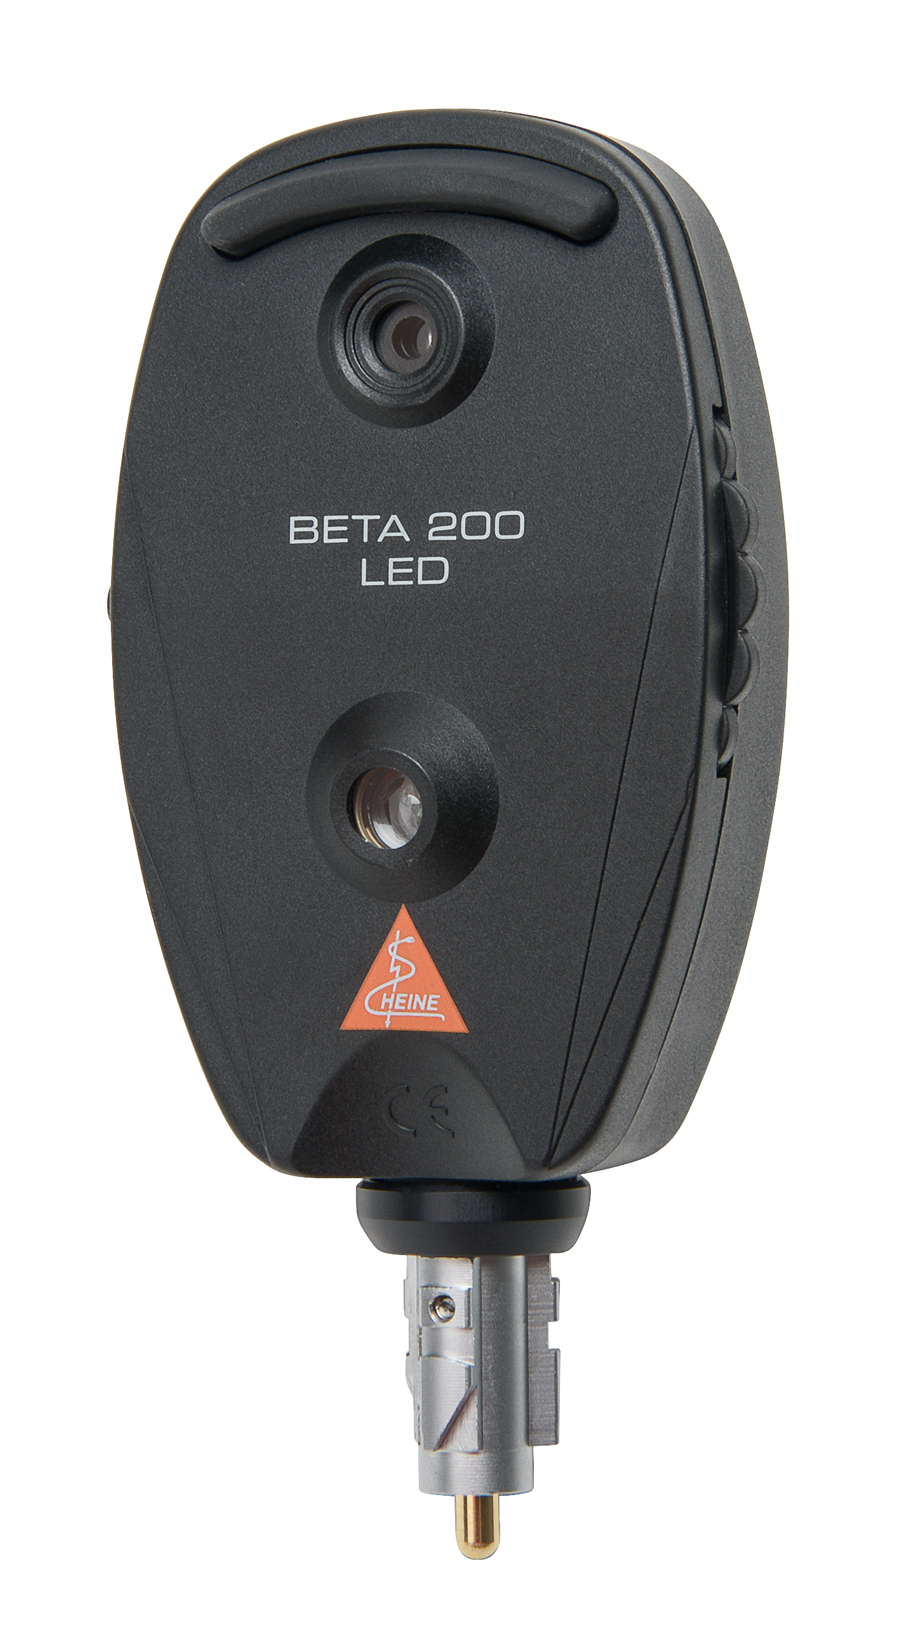 Beta 200 LED Ophthalmoscope